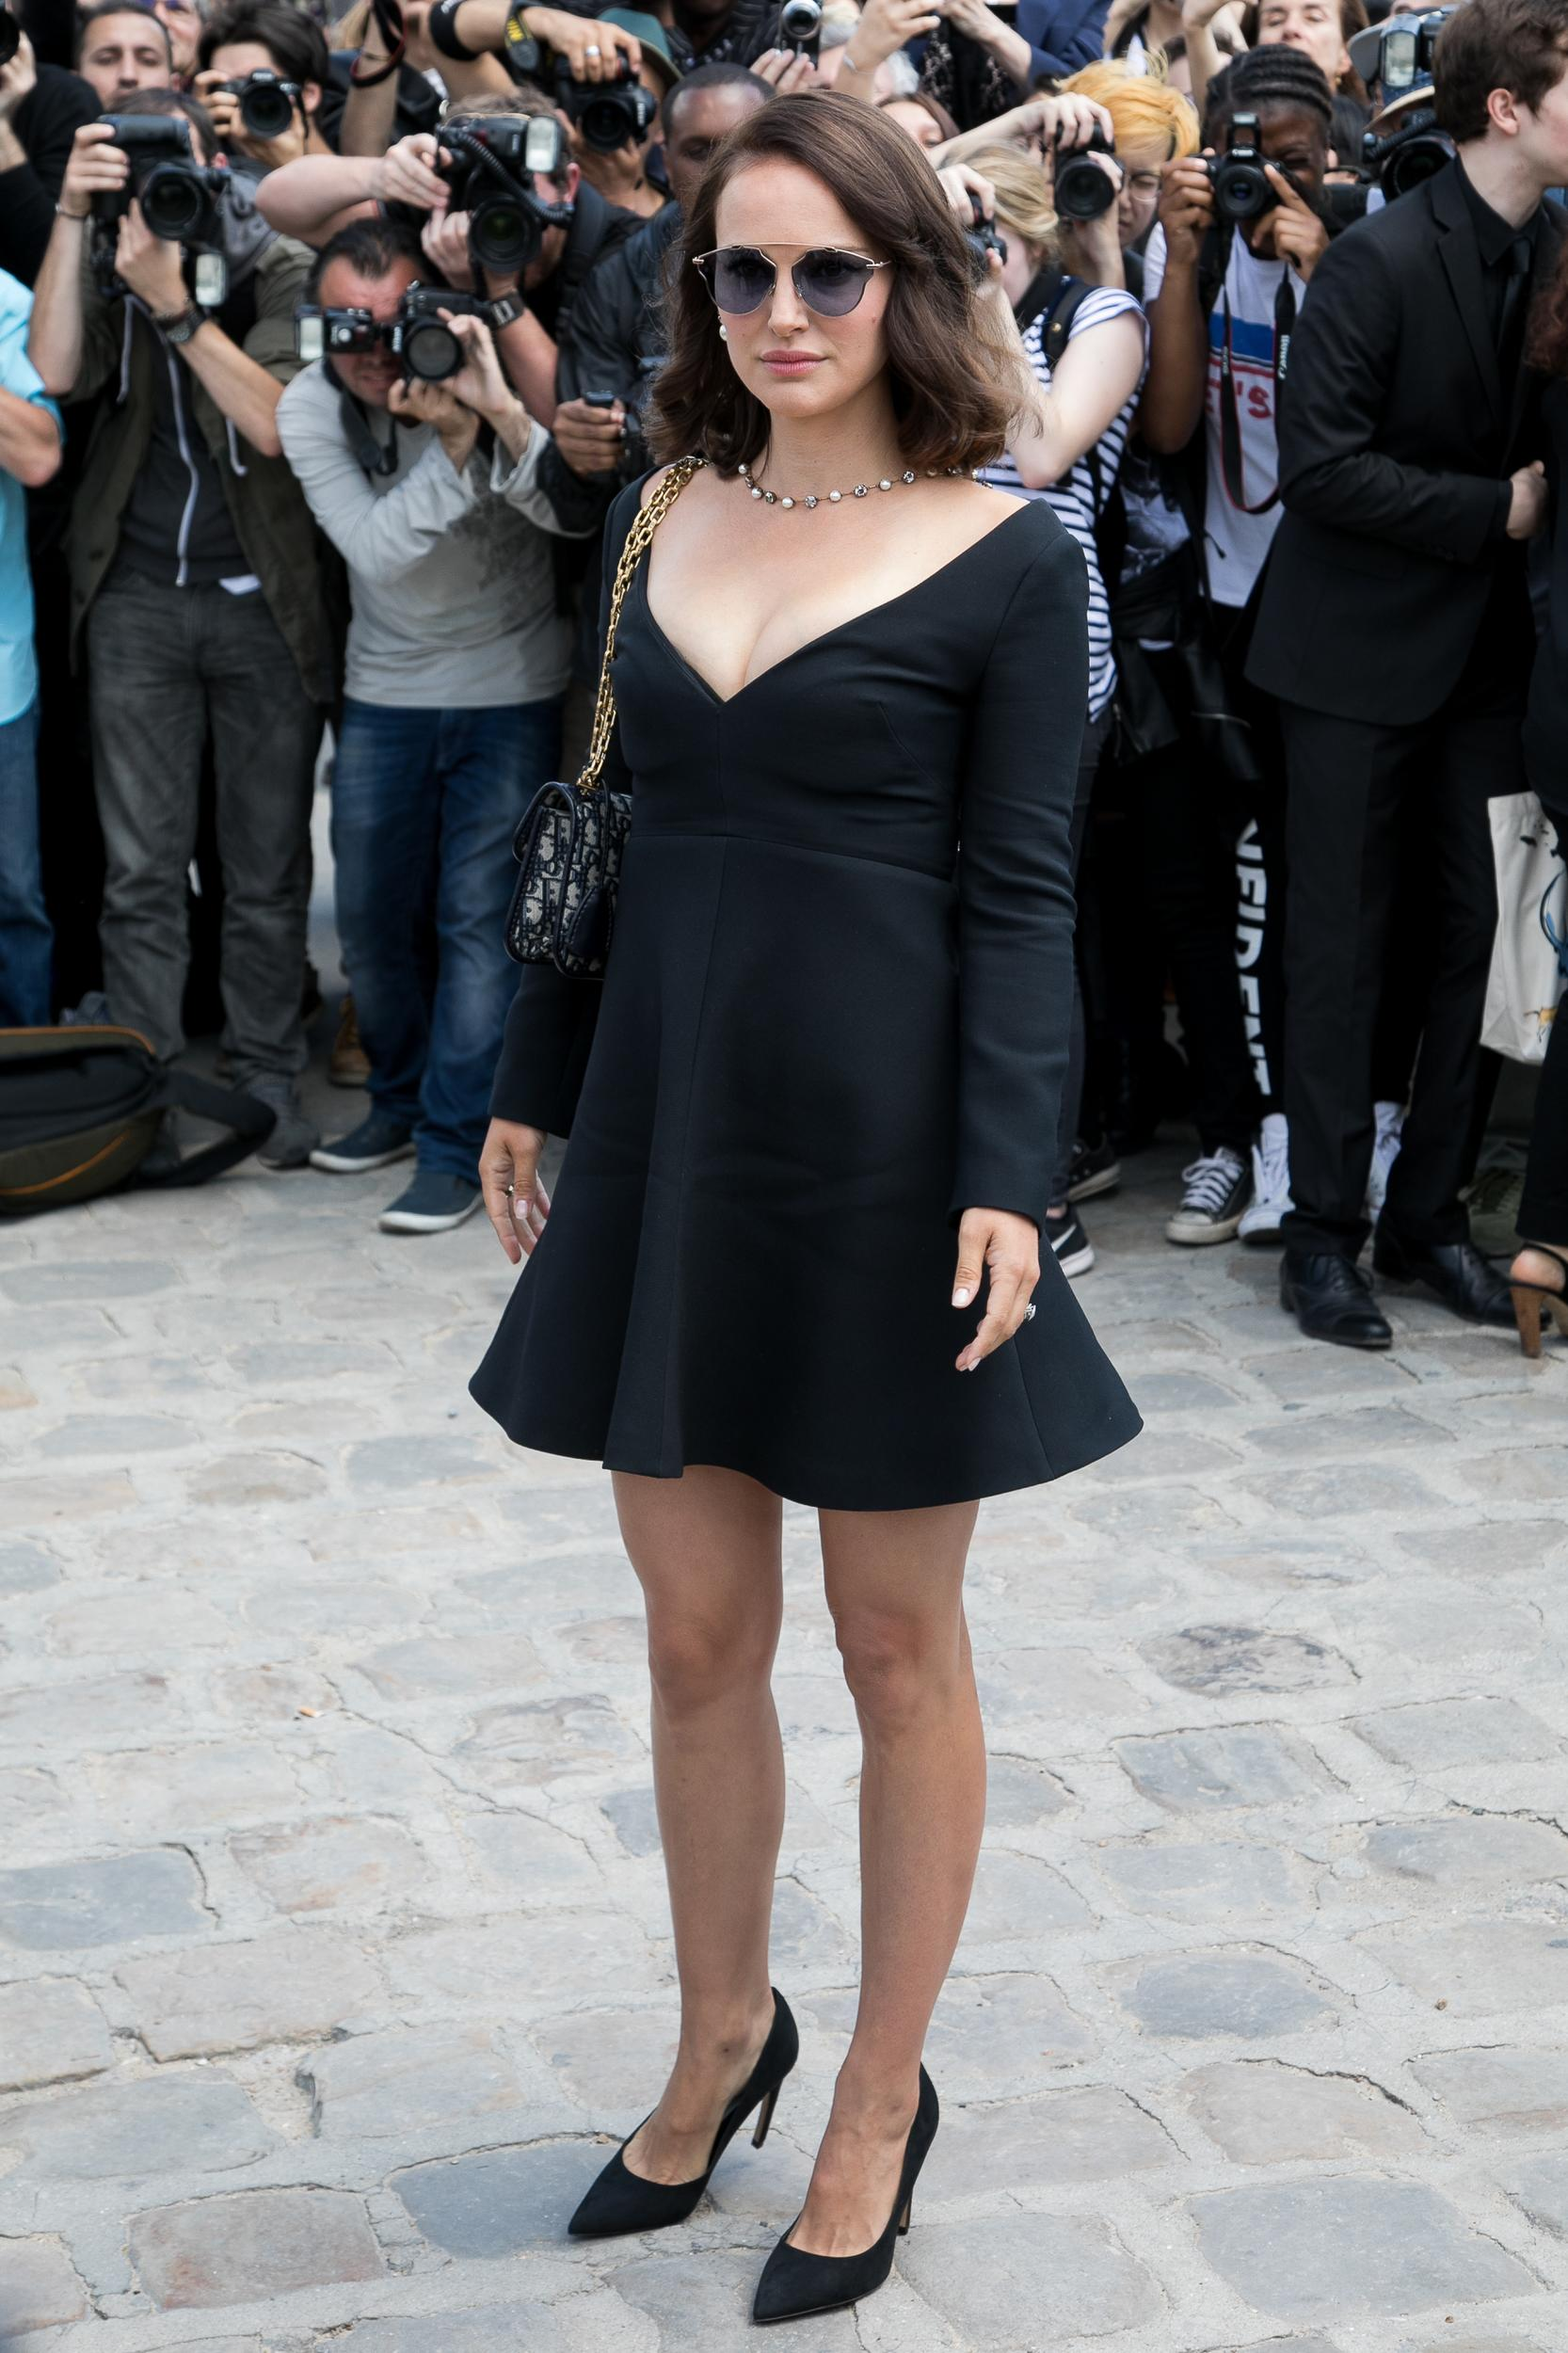 PARIS, FRANCE - JULY 03:  Actress Natalie Portman attends the Christian Dior Haute Couture Fall/Winter 2017-2018 show as part of Paris Fashion Week on July 3, 2017 in Paris, France.  (Photo by Marc Piasecki/WireImage)